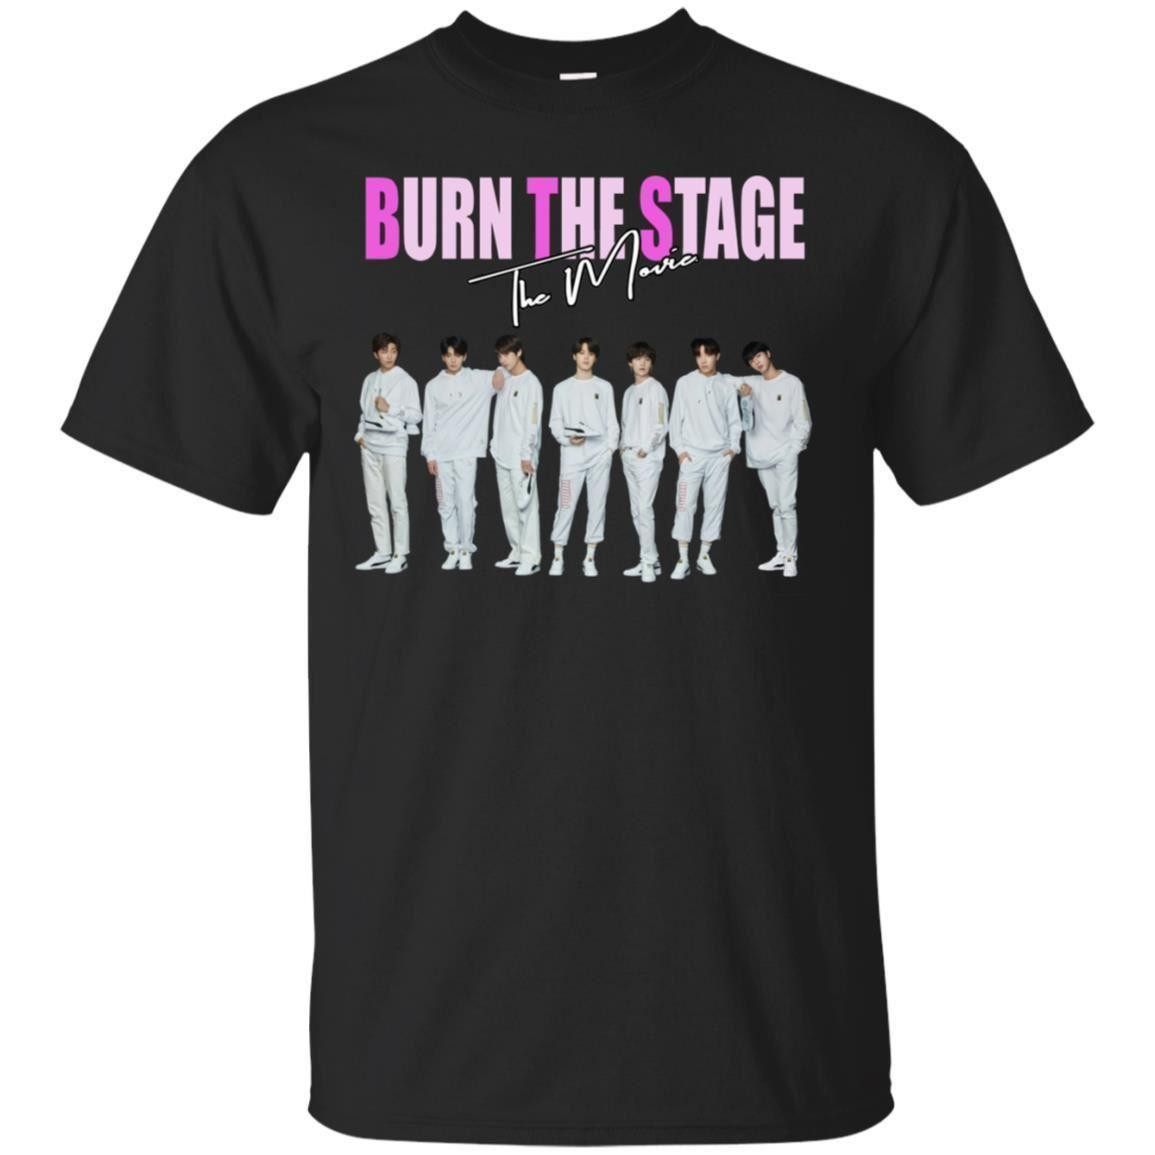 BTS Burn The Stage The Movie T-Shirt BTS Music Tee Shirt Short Sleeve S-5XL